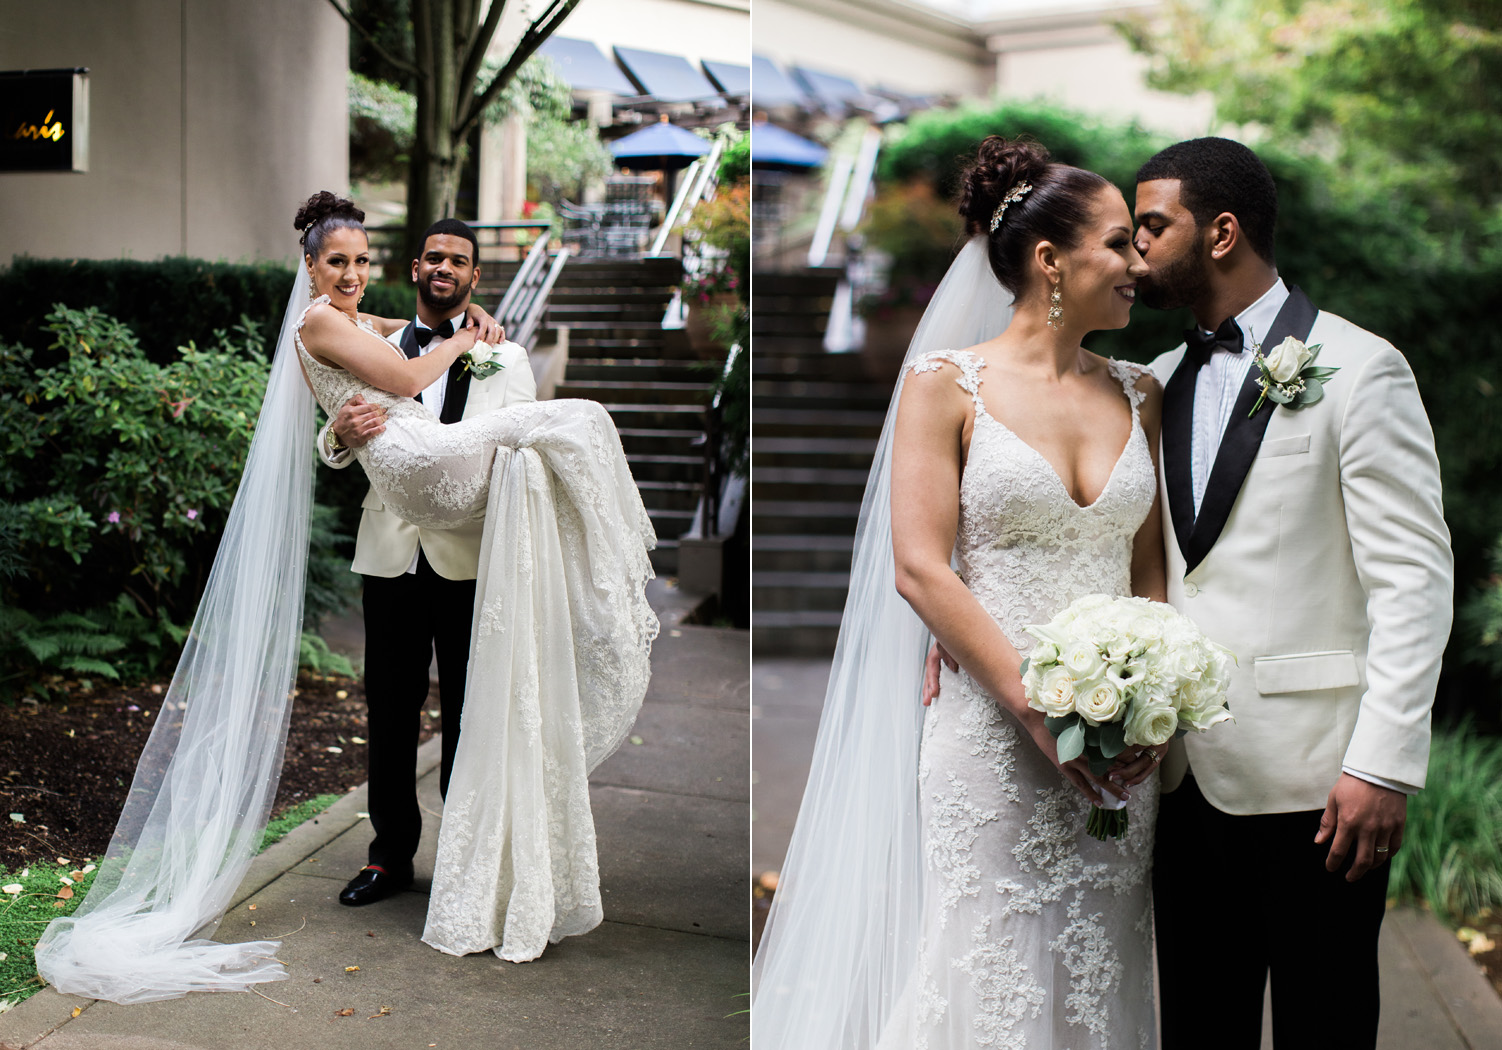 Romantic Bride and Groom African American Couple Wedding Portraits at The Bellevue Club